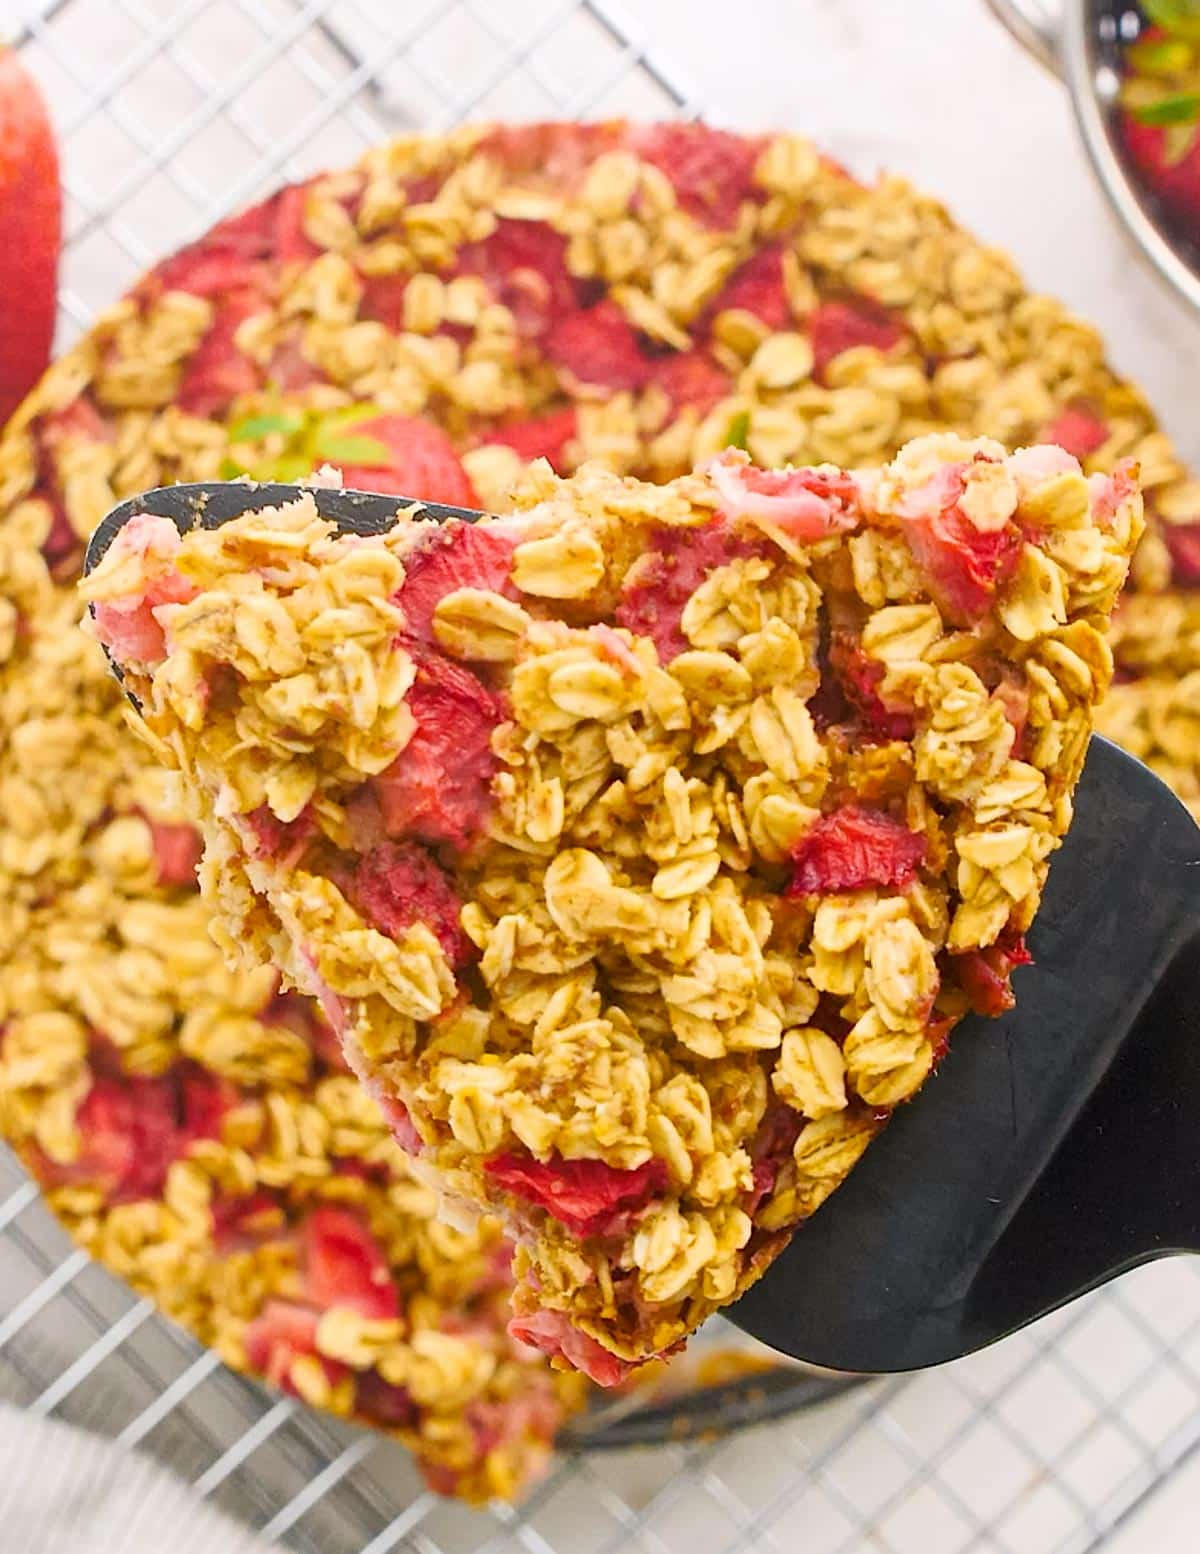 a slice of strawberry baked oatmeal